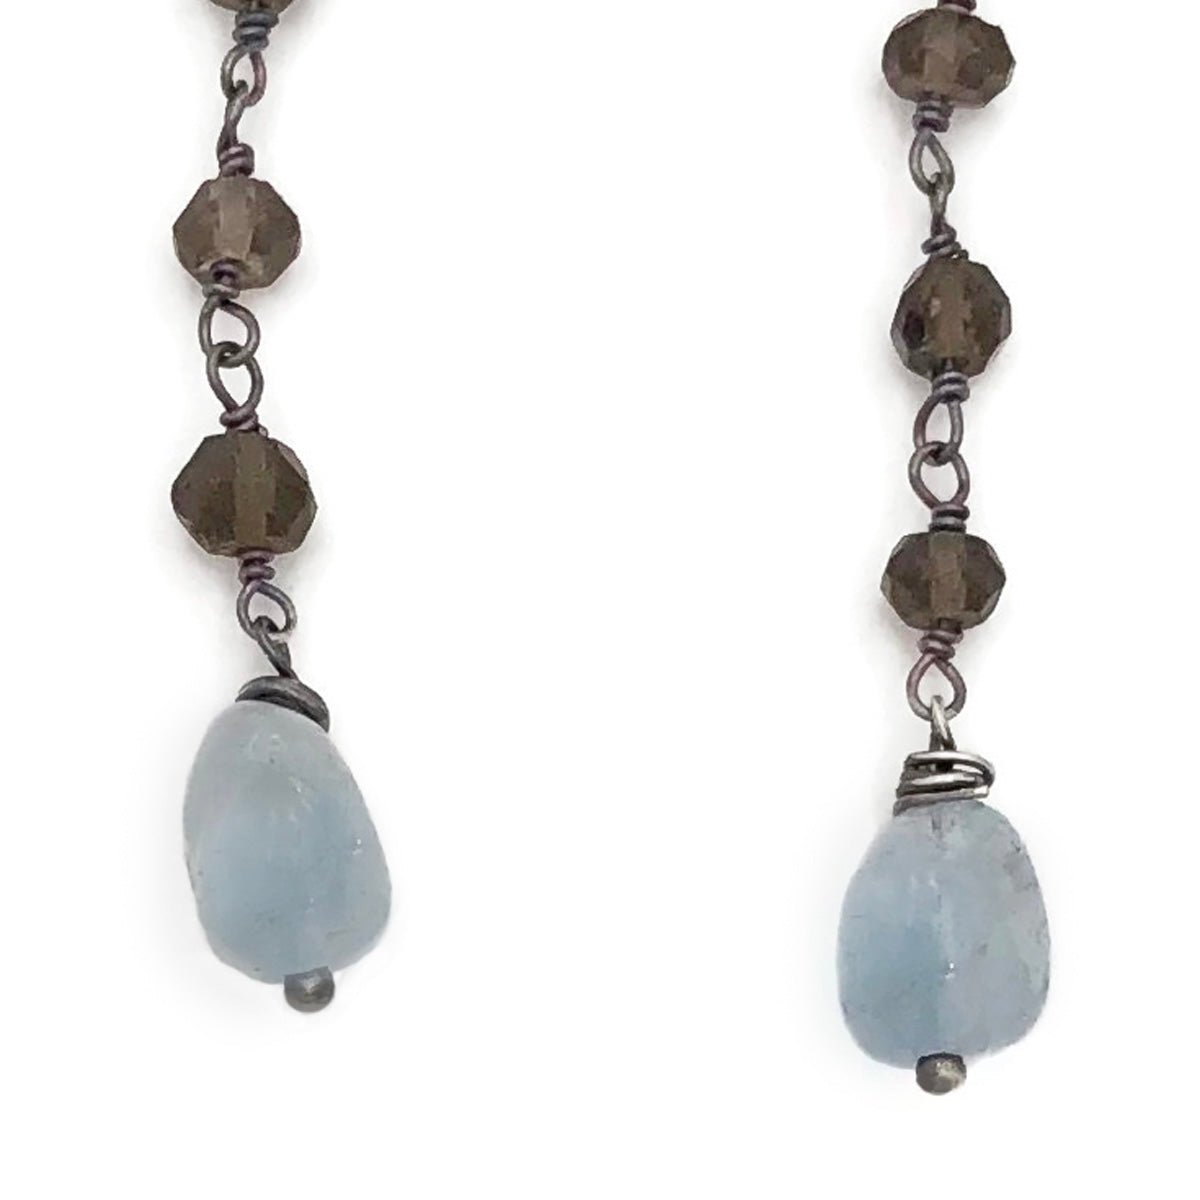 Smokey quartz with Aqua marine drop